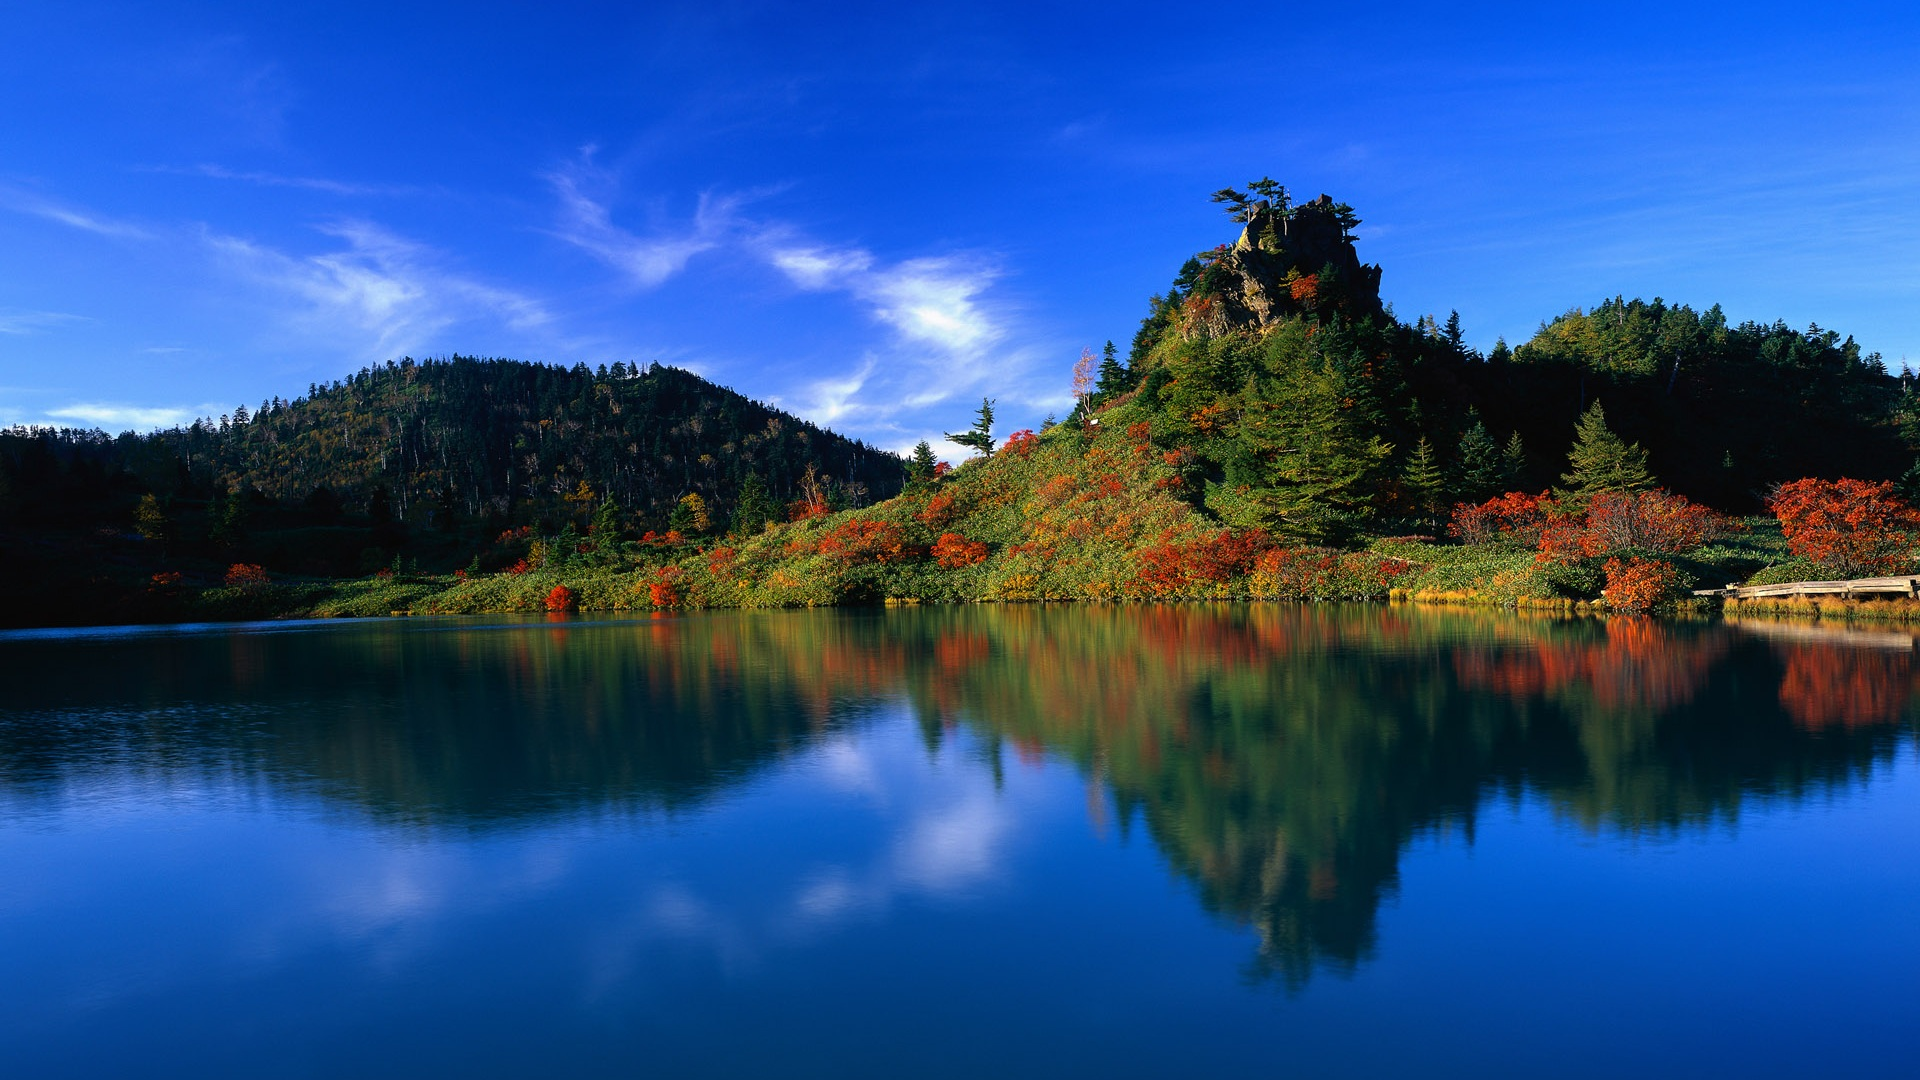 Download Wallpaper 1920x1080 Blue Sky Blue Water Green